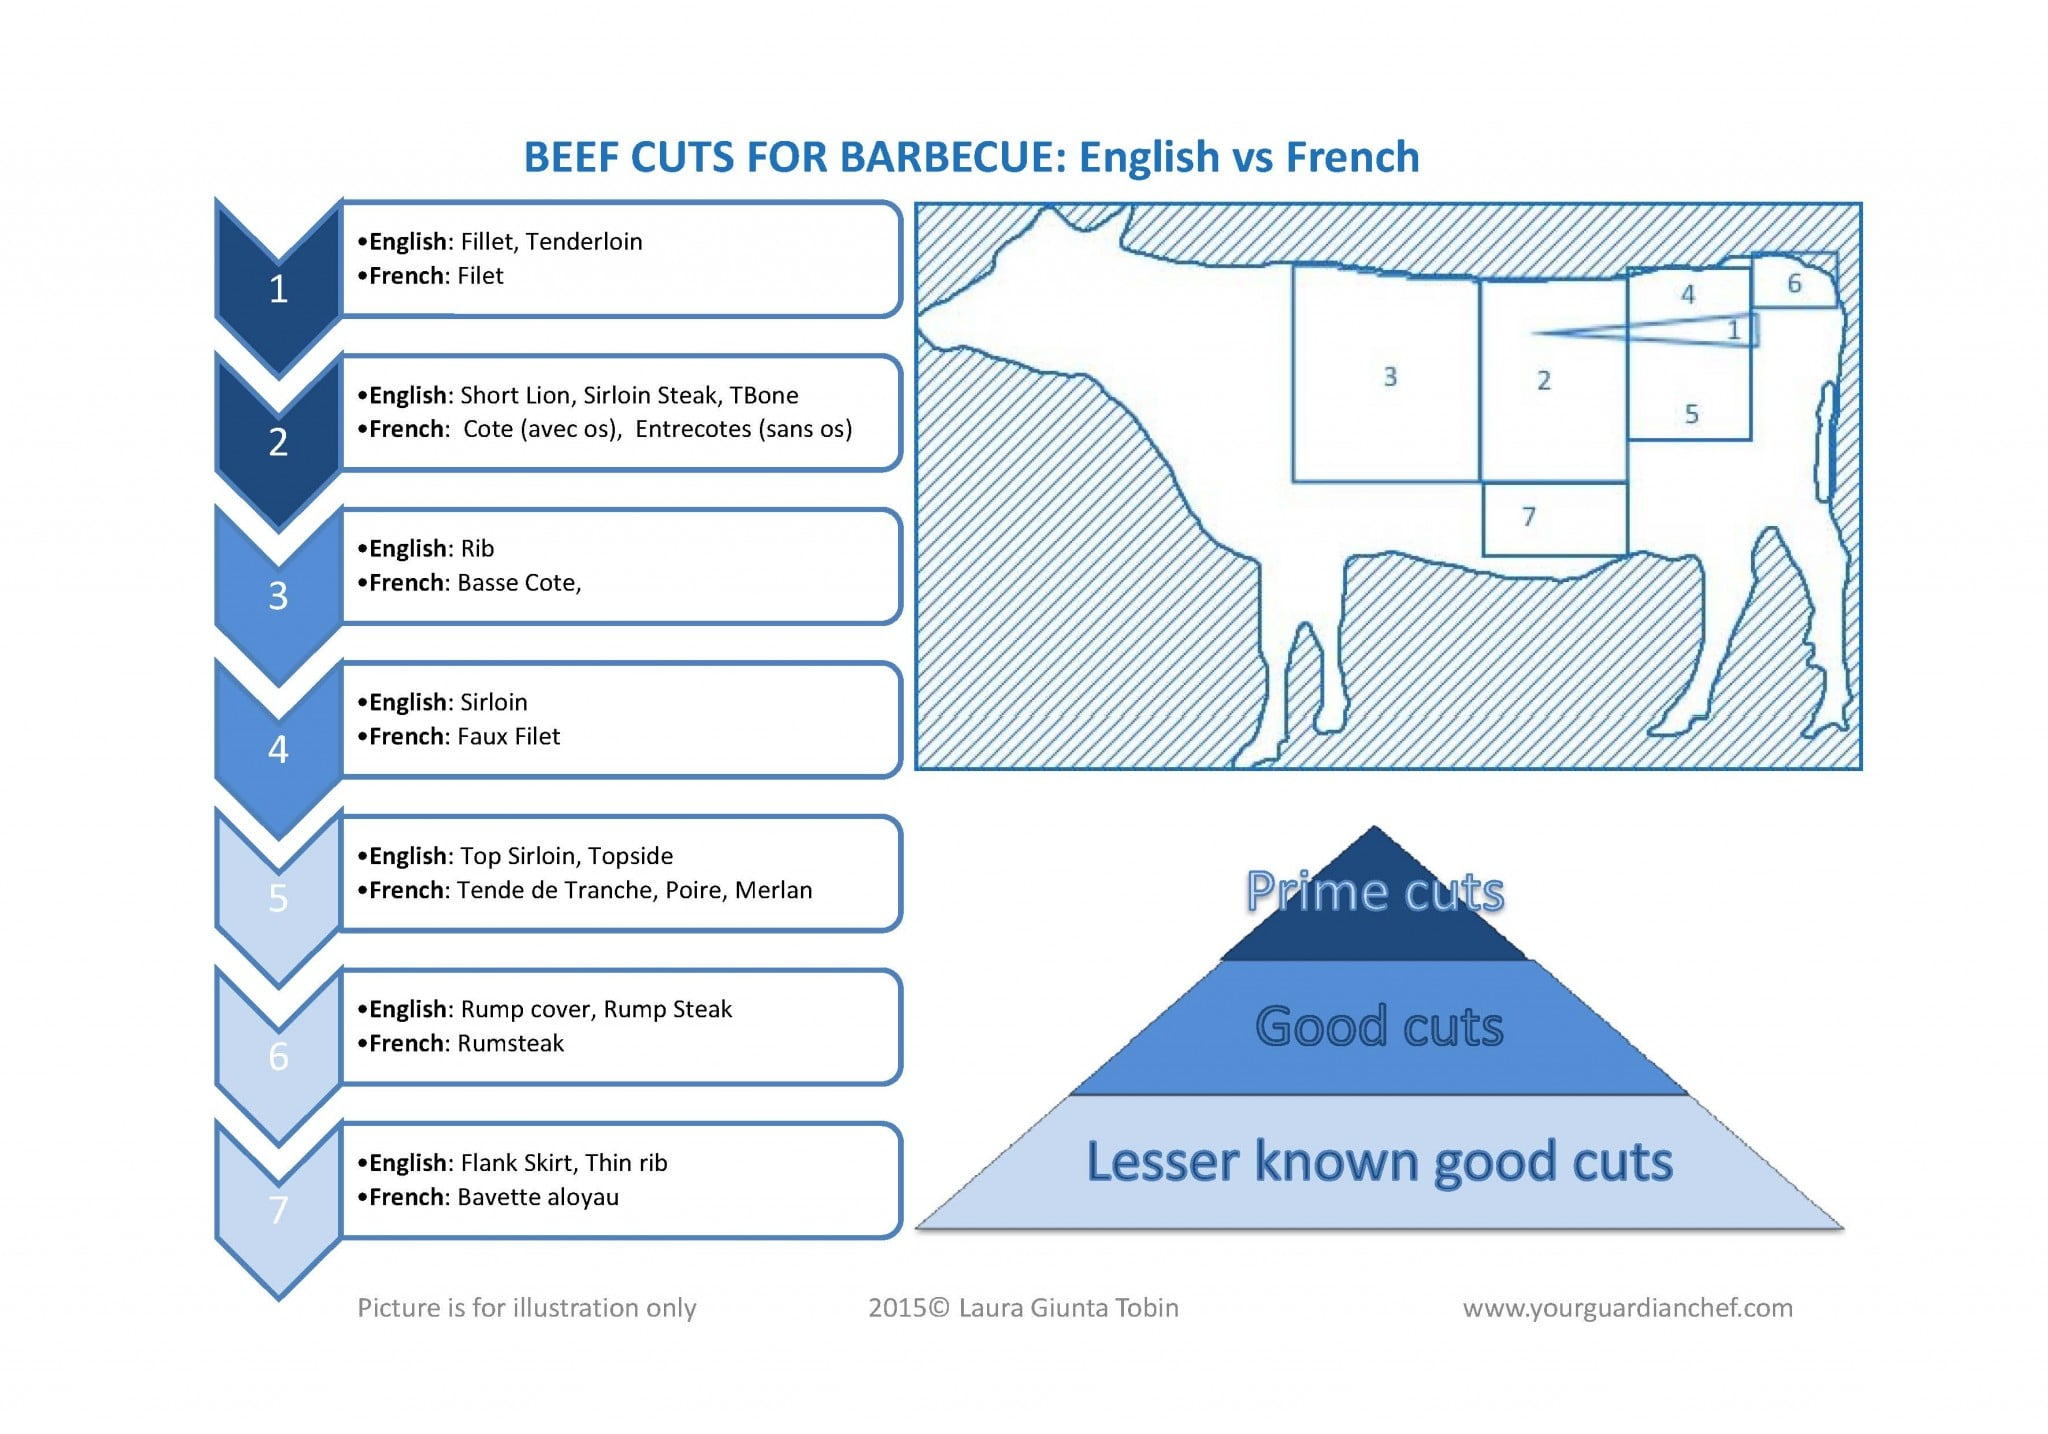 English In Italian: Cuts Of Beef For Barbecuing (in French And Italian)